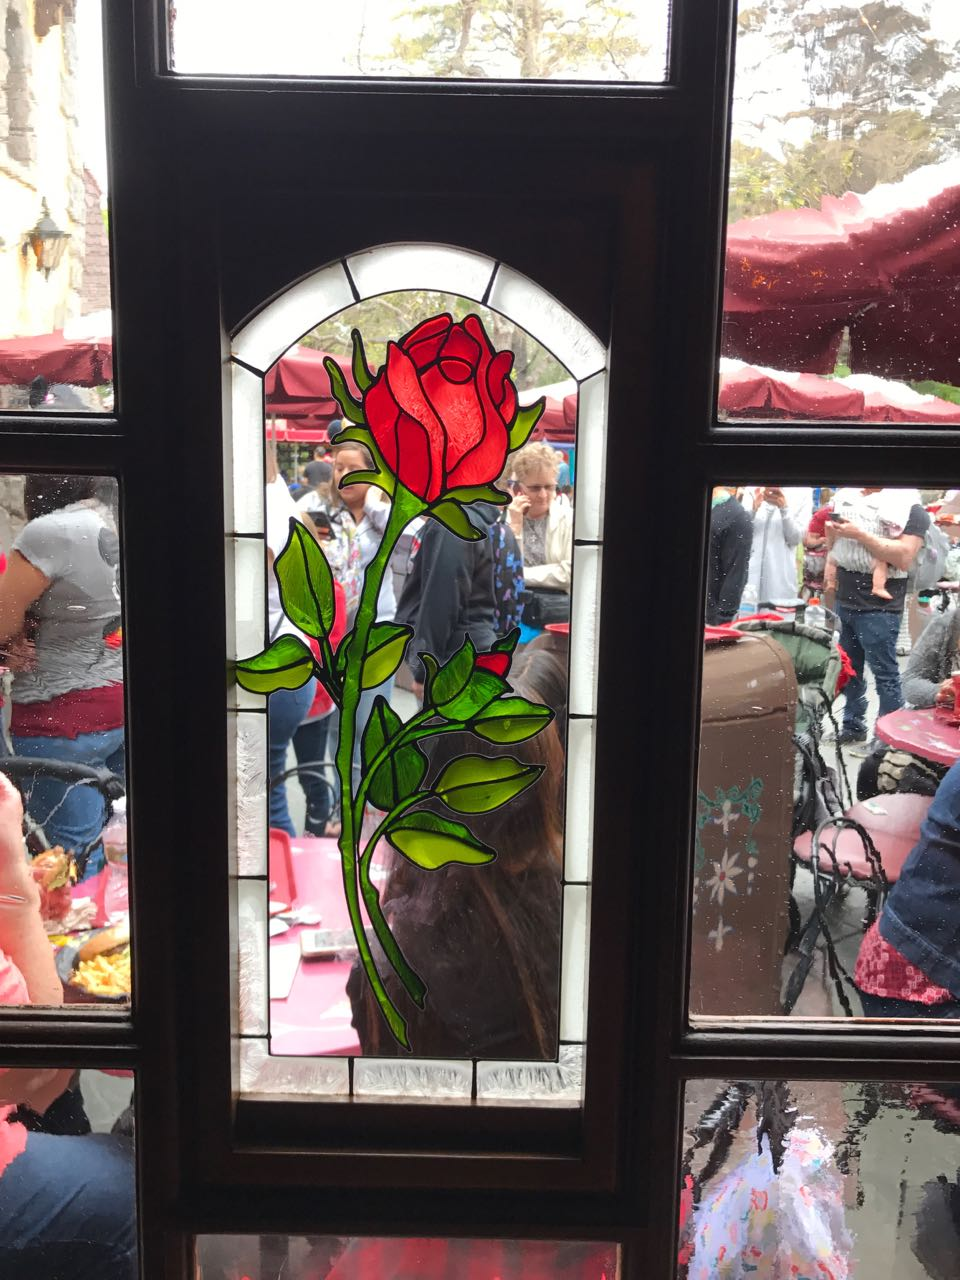 Red Rose Tavern at Disneyland